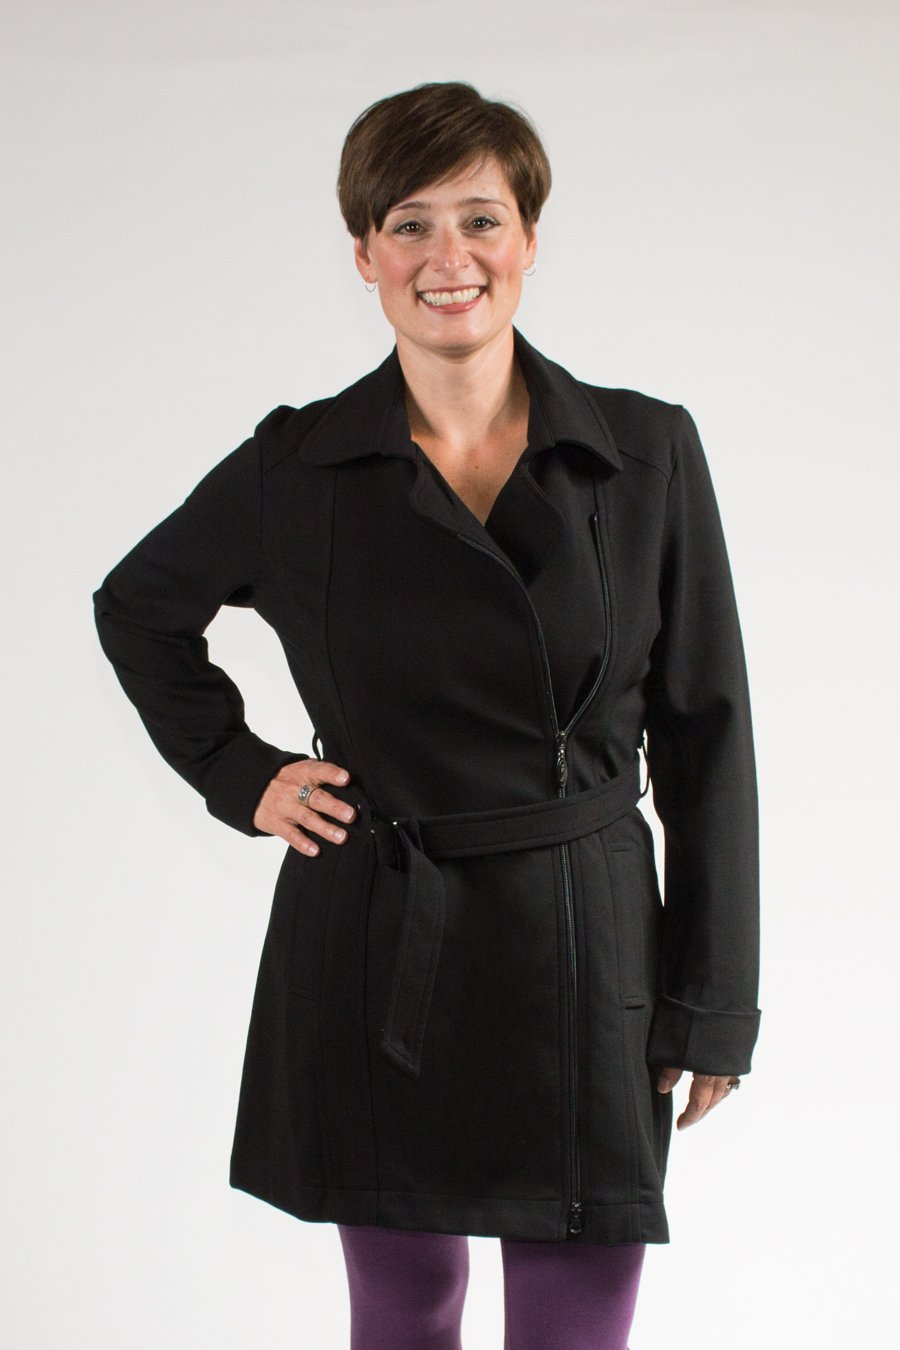 Karen Coat, Black, Modal - Blue Sky Clothing Co